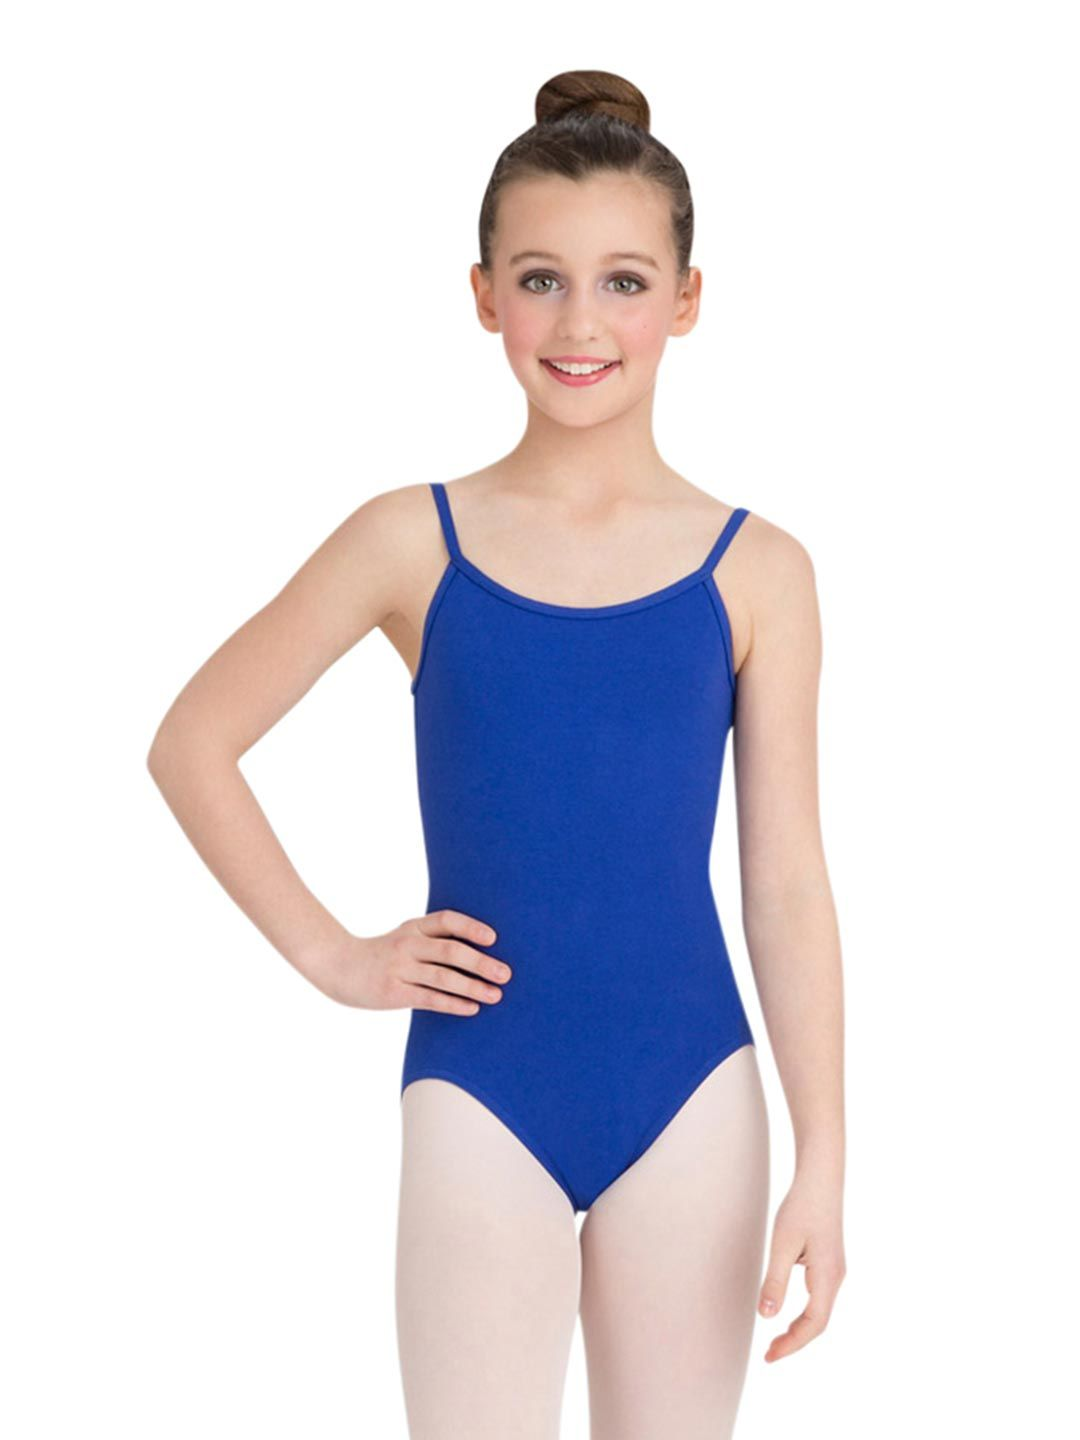 76dfb9348 Childrens Camisole Leotard W  Adjustable Straps CC100C (Garnet ...